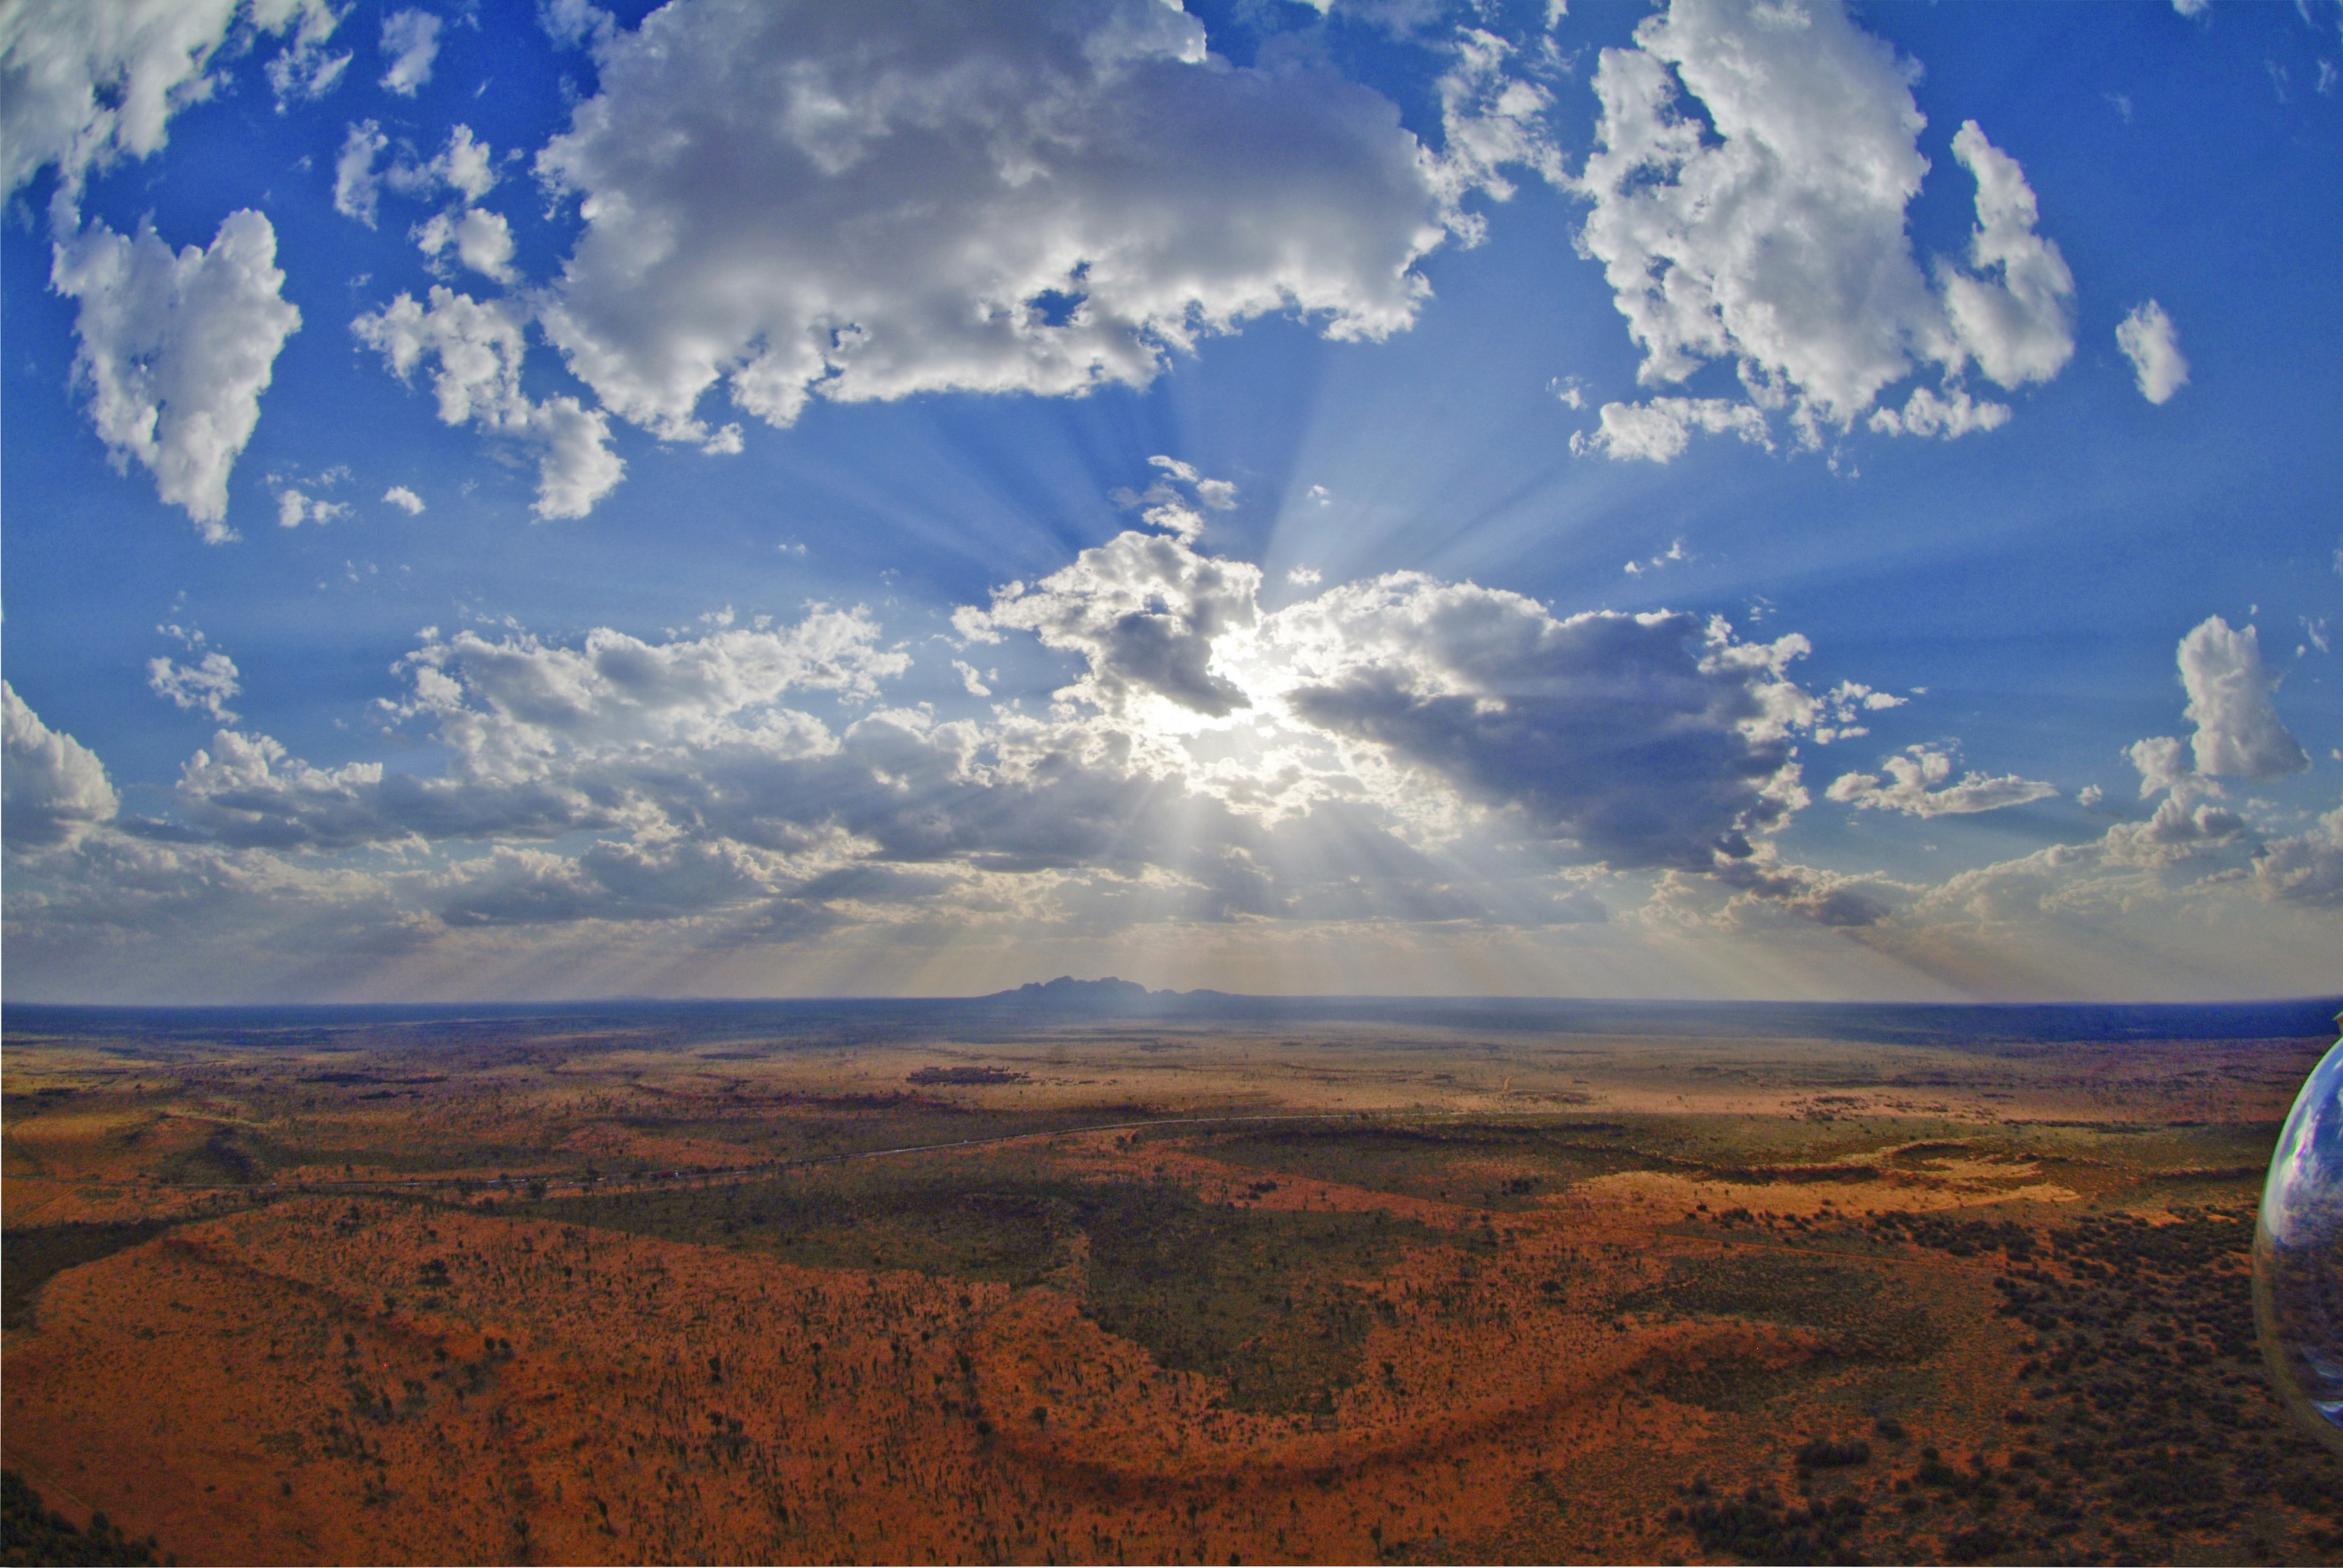 aerial view of the outback